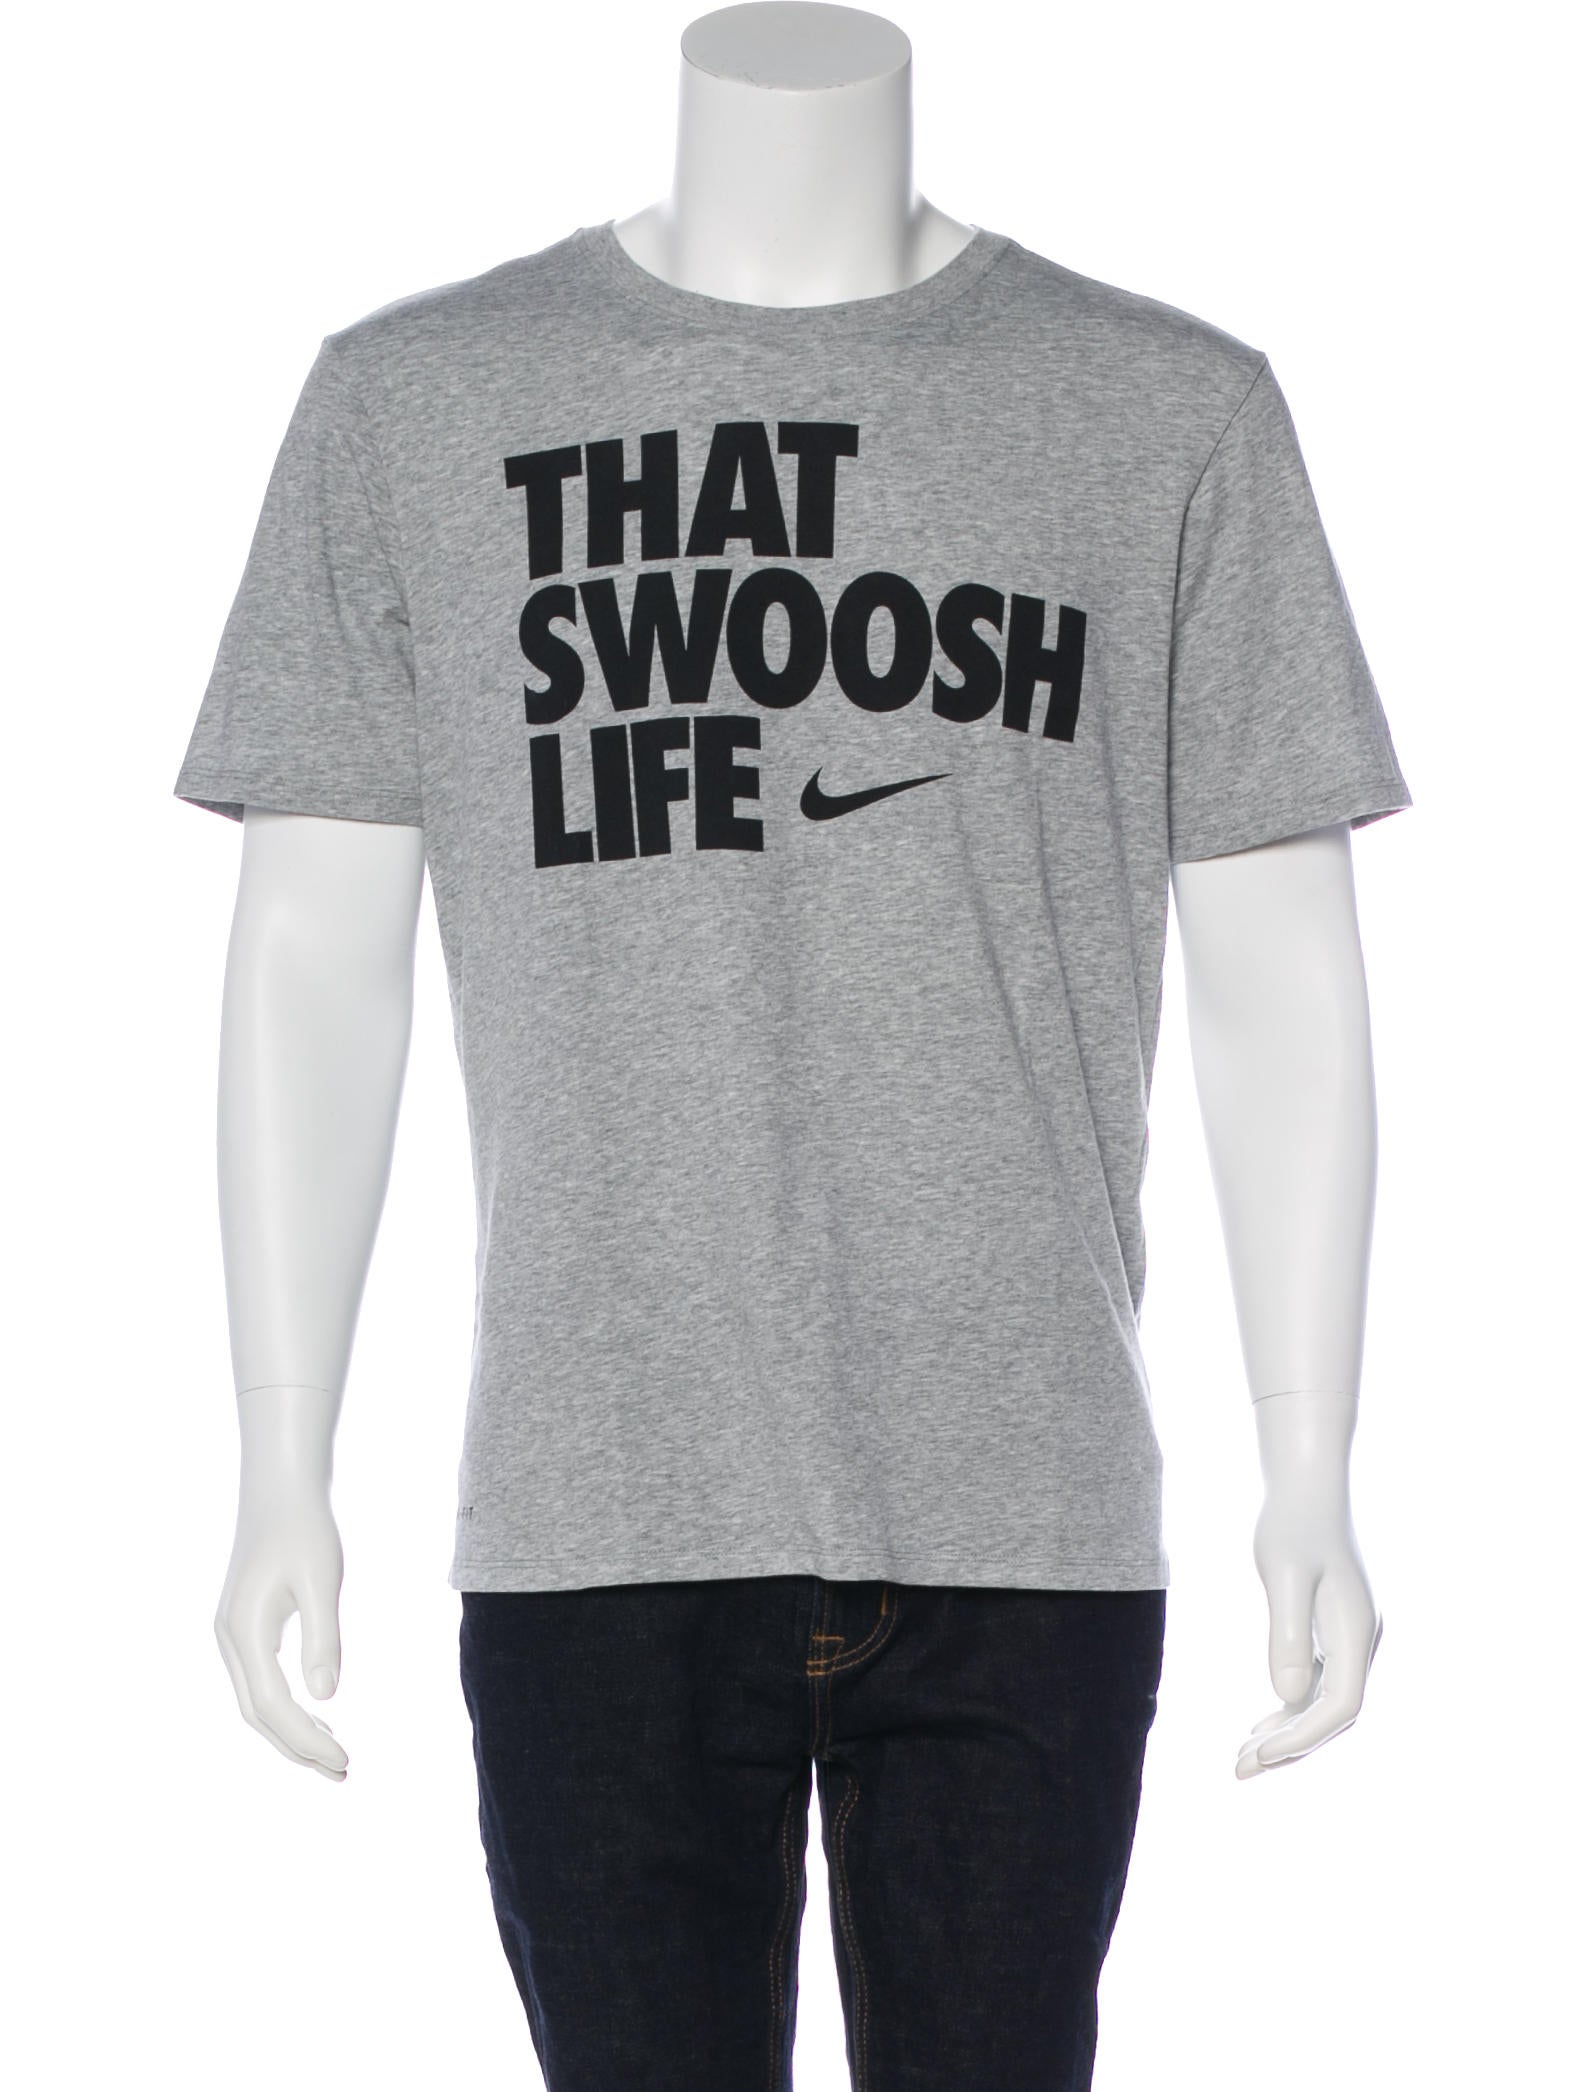 125f455a Nike That Swoosh Life T-Shirt - Clothing - WU226786 | The RealReal